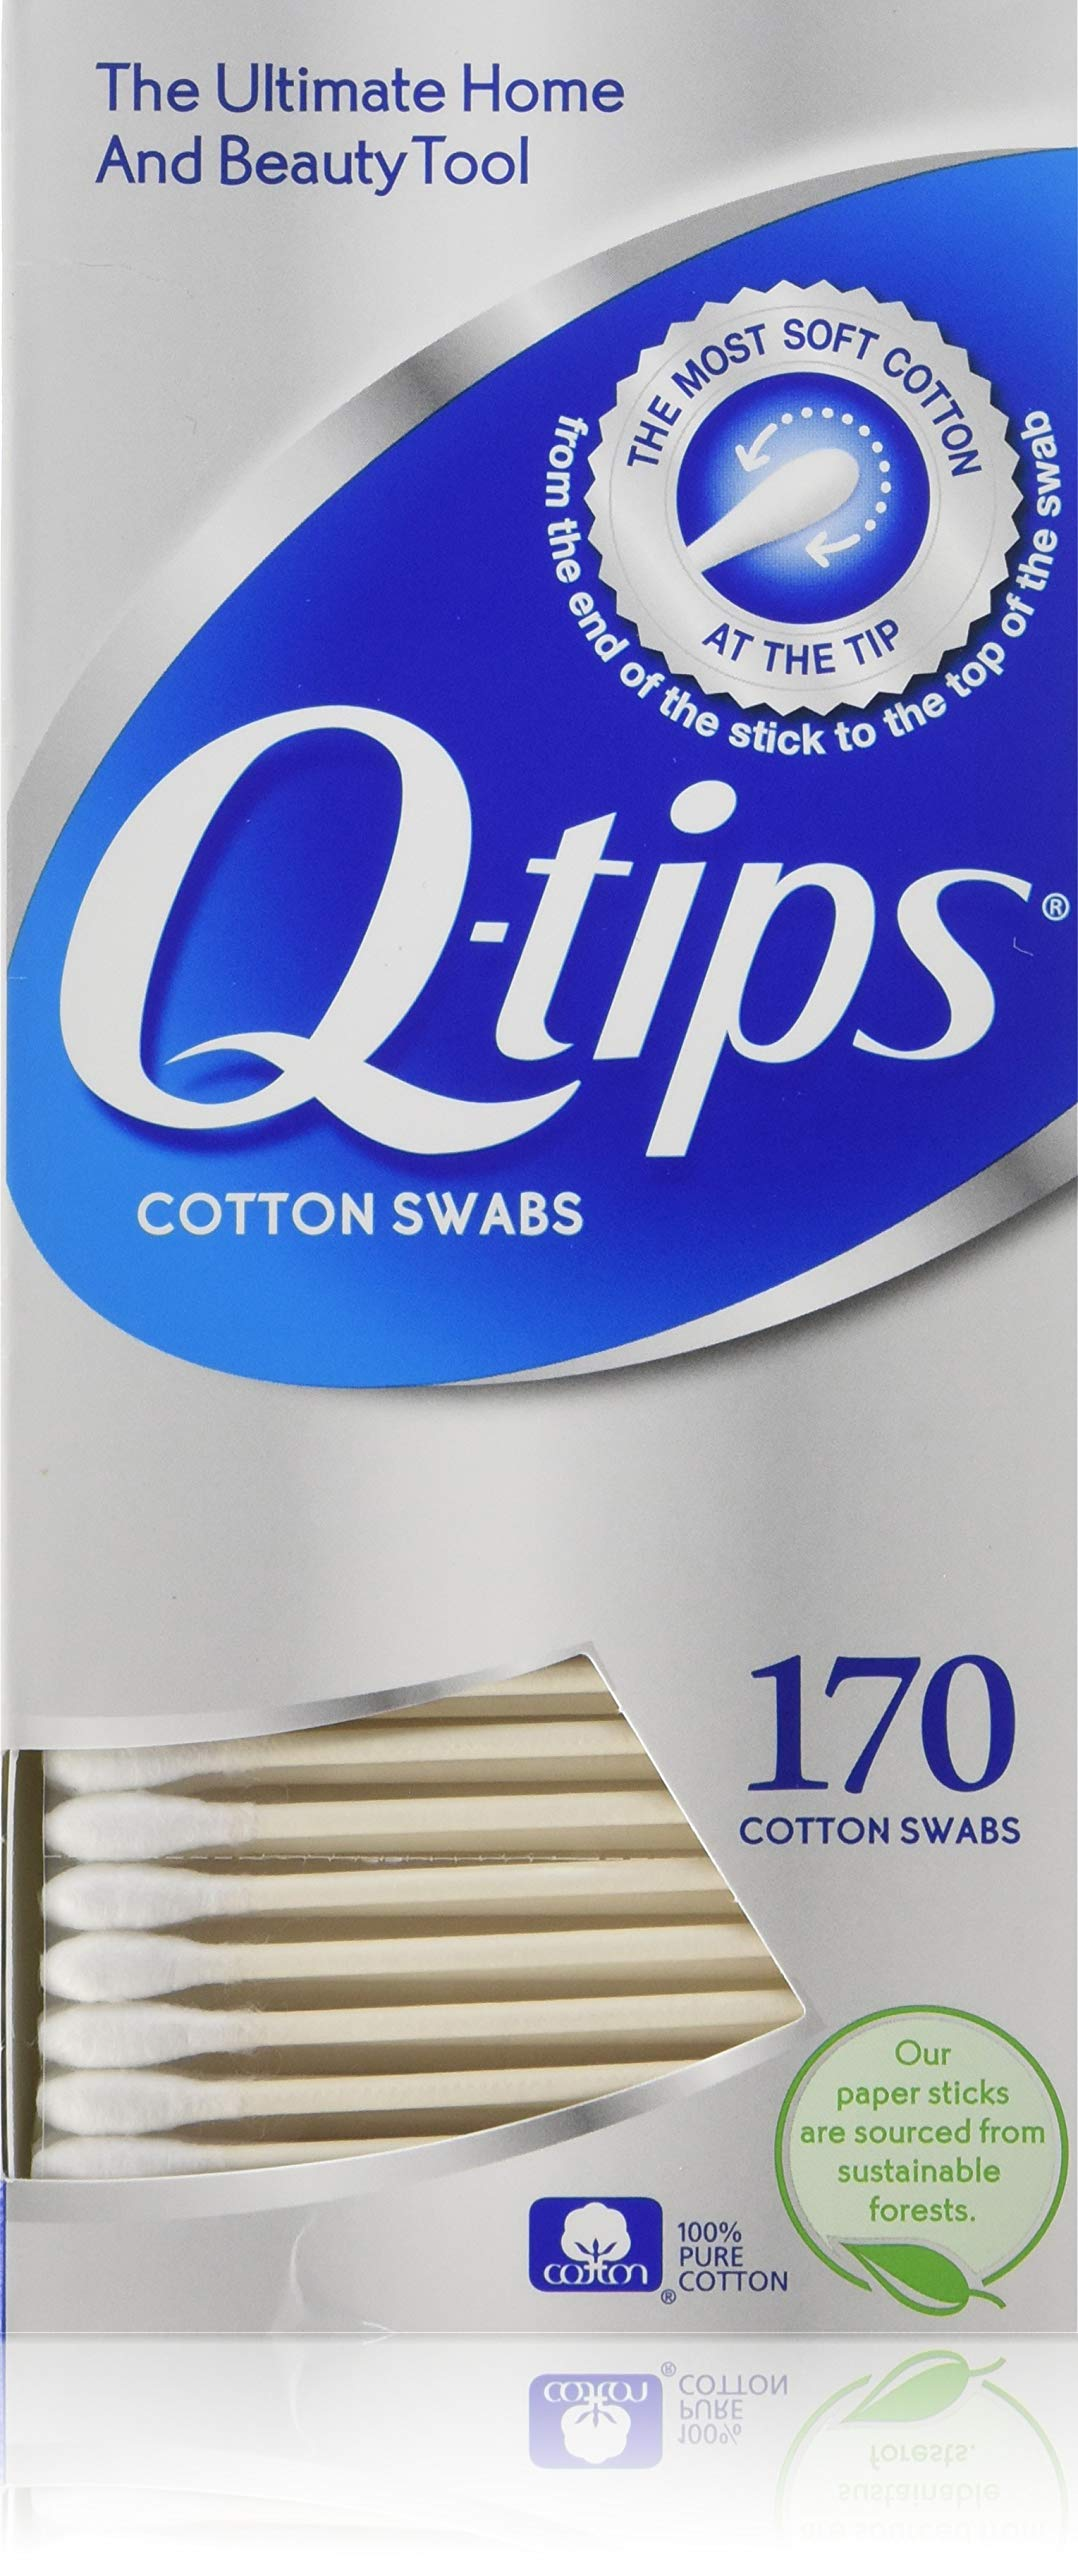 PACK OF 12 - Q-tips Precision Tips Cotton Swabs, 170 count